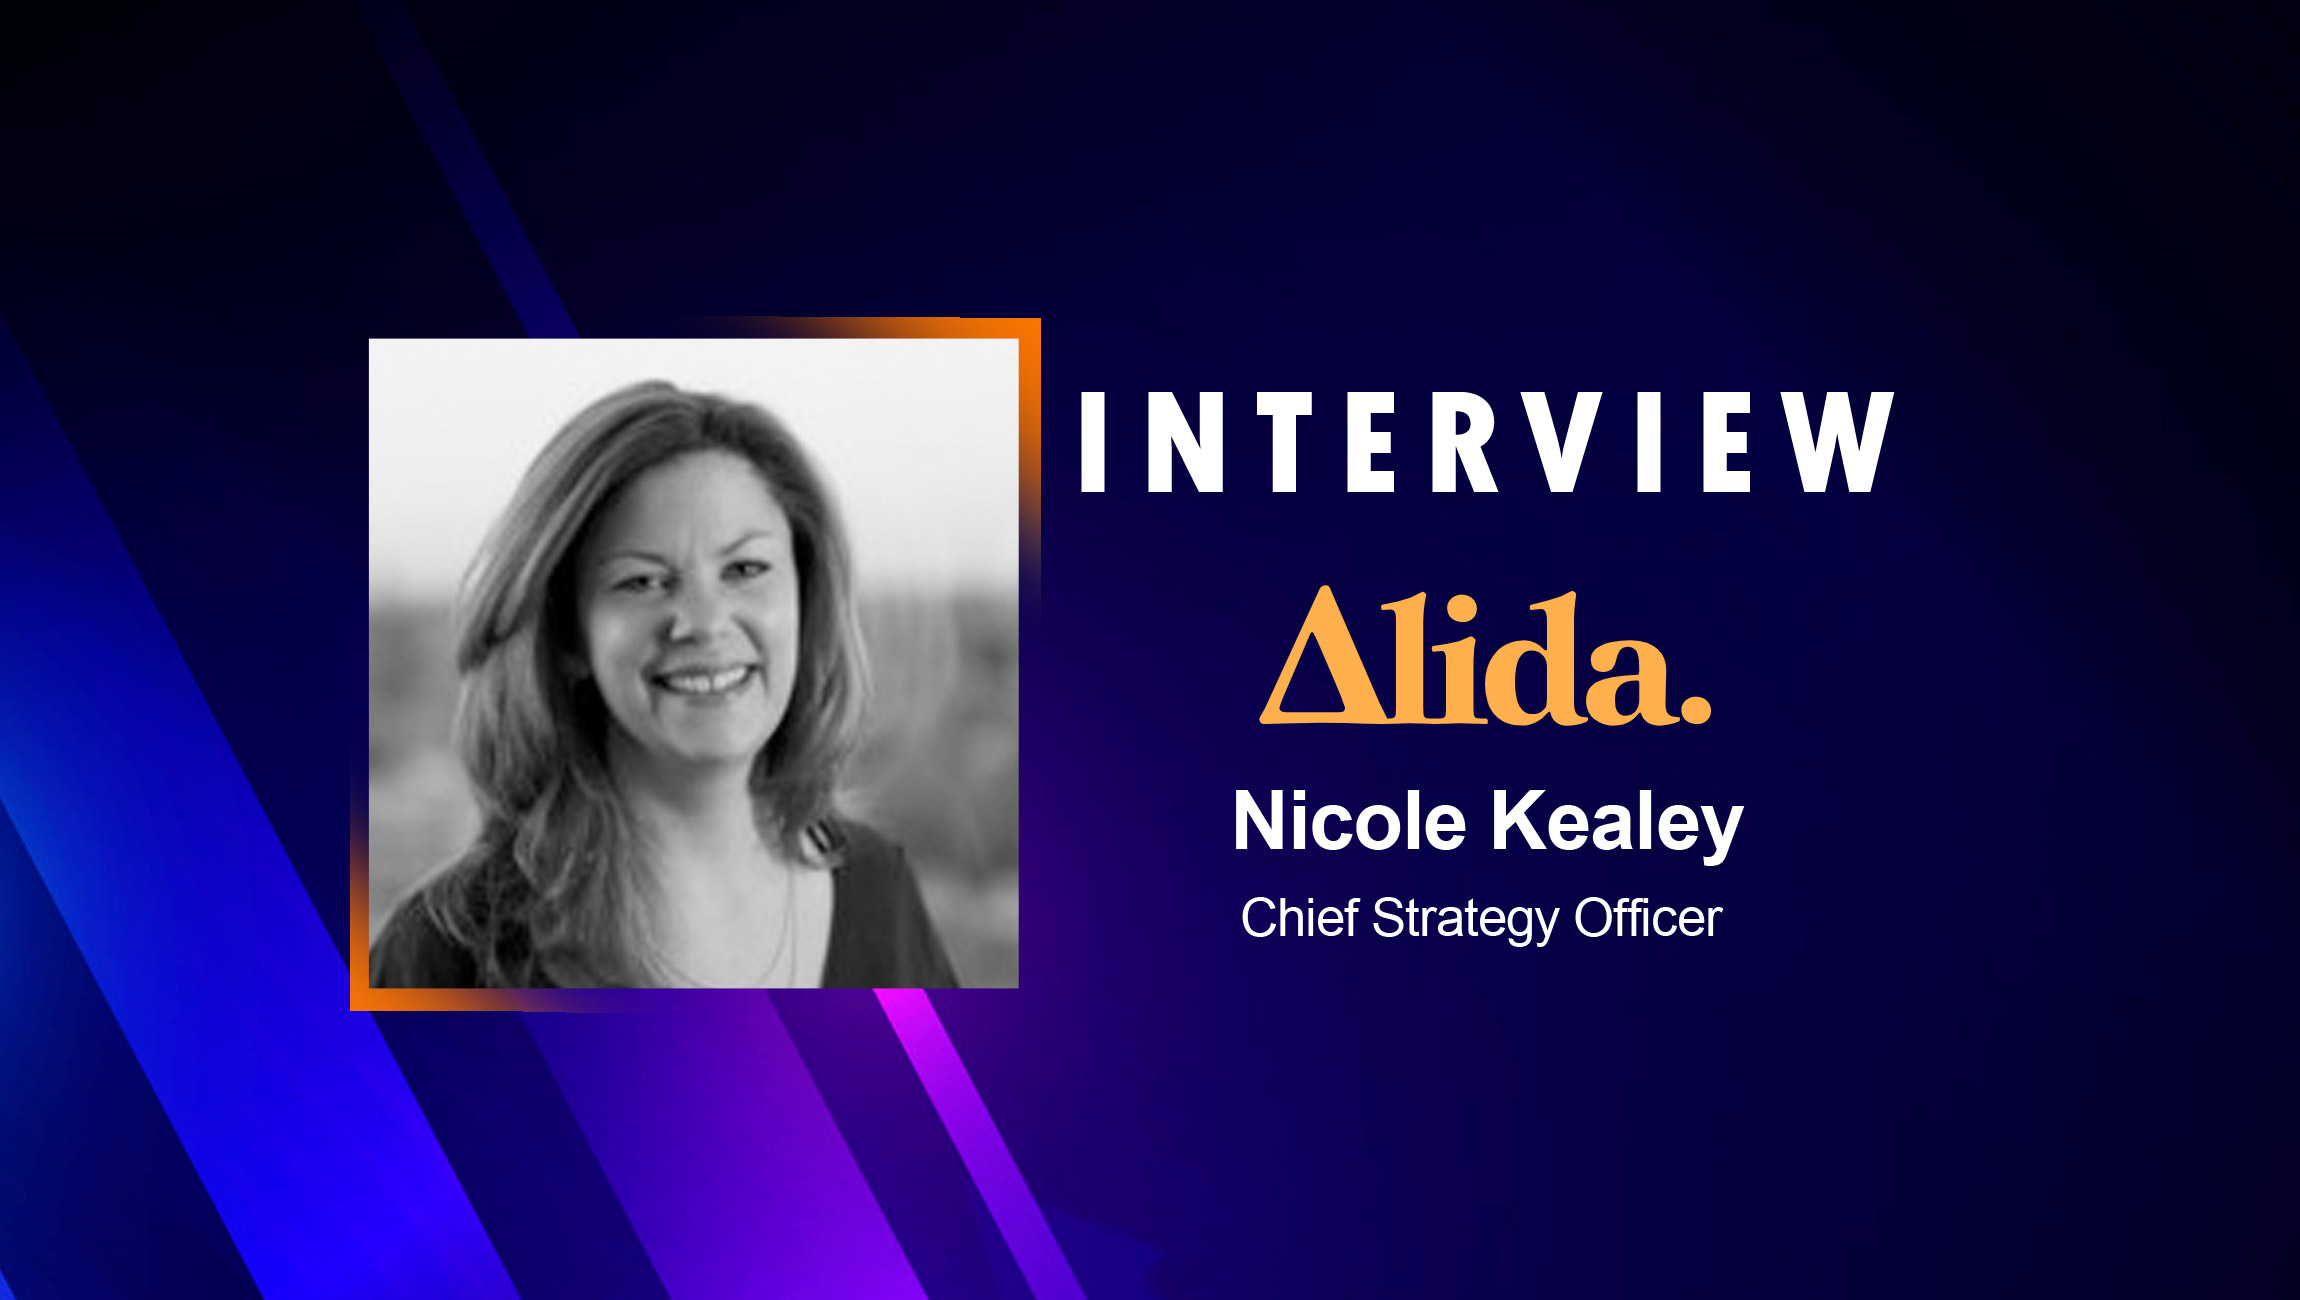 SalesTechStar Interview with Nicole Kealey, Chief Strategy Officer at Alida